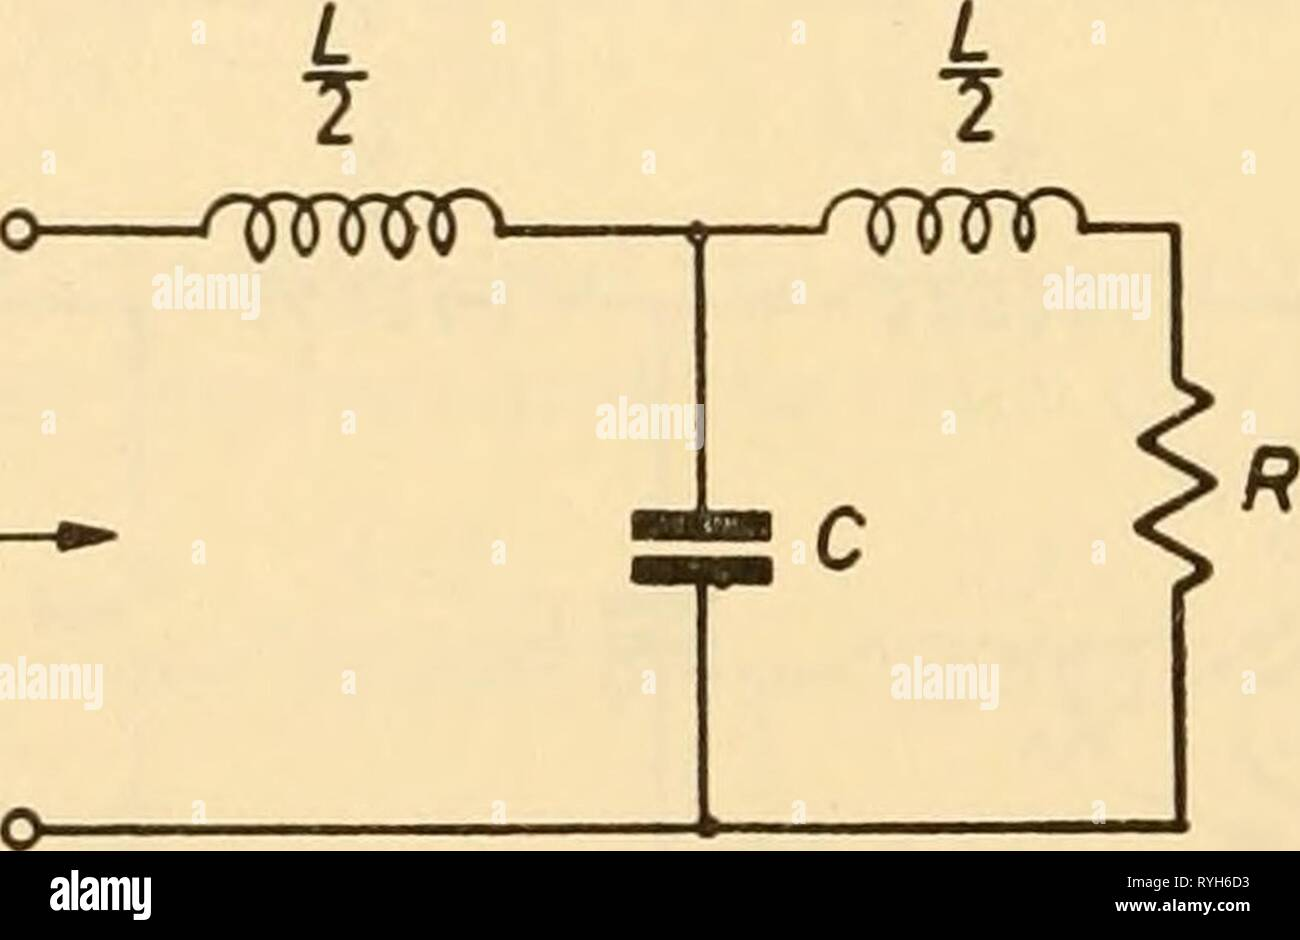 Electronic apparatus for biological research  electronicappara00dona Year: 1958  INDUCTANCES, CAPACITANCES AND RESISTANCES which simpUfies to I^out 1 ( 1 in l-co^-C+j^--^^ + /coL oi^D-C (oCR] 2R SR Now let L/2 = Rjcoc and C =- IjojcR Kout _ 1 2 Fin 1 1-2 lo ,OJc^ in '2. 1 2 1 2-- - . o)c mcJ J 1-2 ^' ]•+(^JT' + 2^ Wo/ J . 1/2 The one-half here represents the usual loss of e.m.f. consequent upon the use of a matched load. The bracketed term describes the filter performance. By the usual process the phase shift is seen to be 3 (j) = tan' -1 ^c/ ^ CO CO J 1-21 Extent to which matching is pr - Stock Image